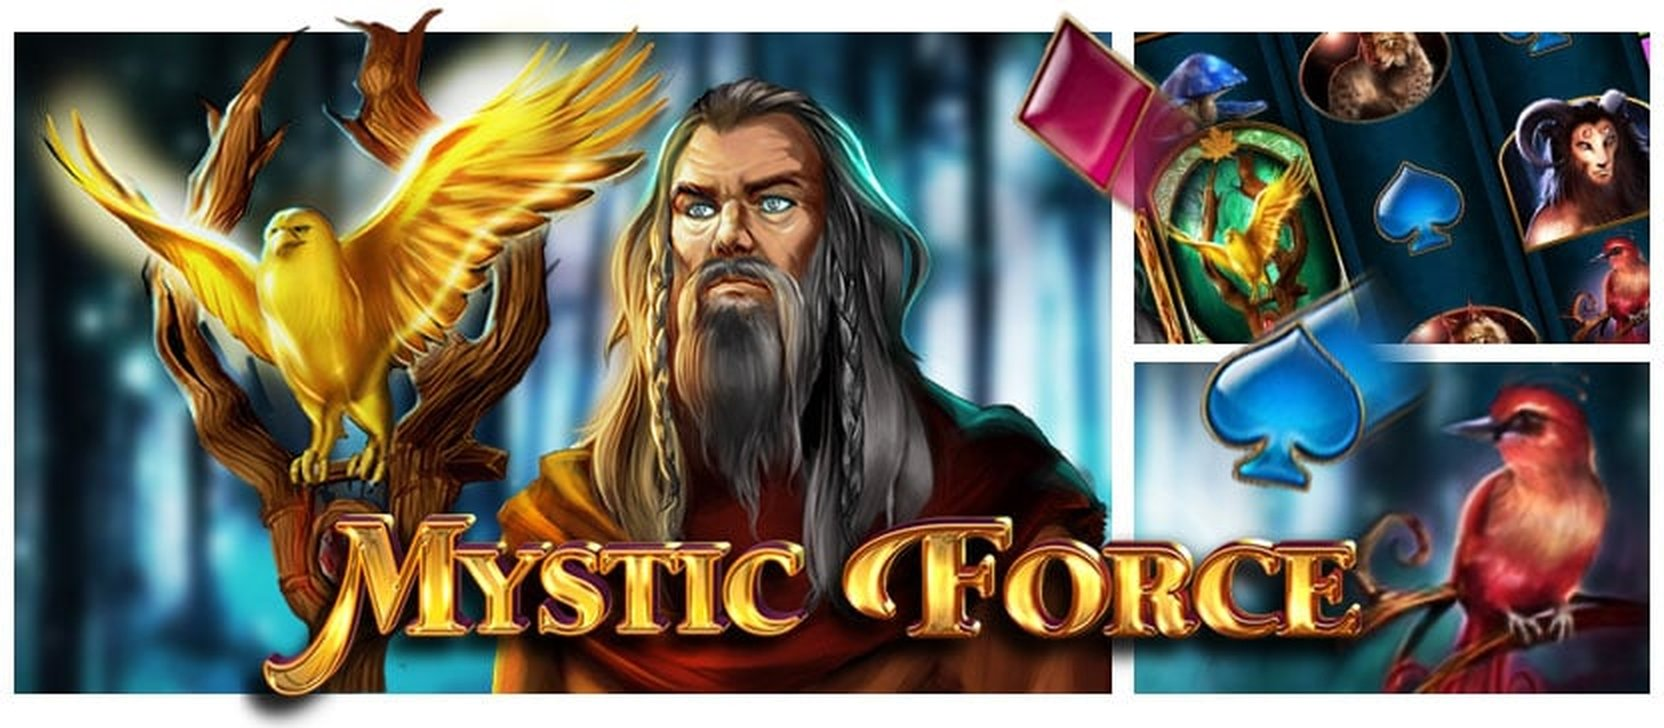 The Mystic Force Online Slot Demo Game by Bally Wulff